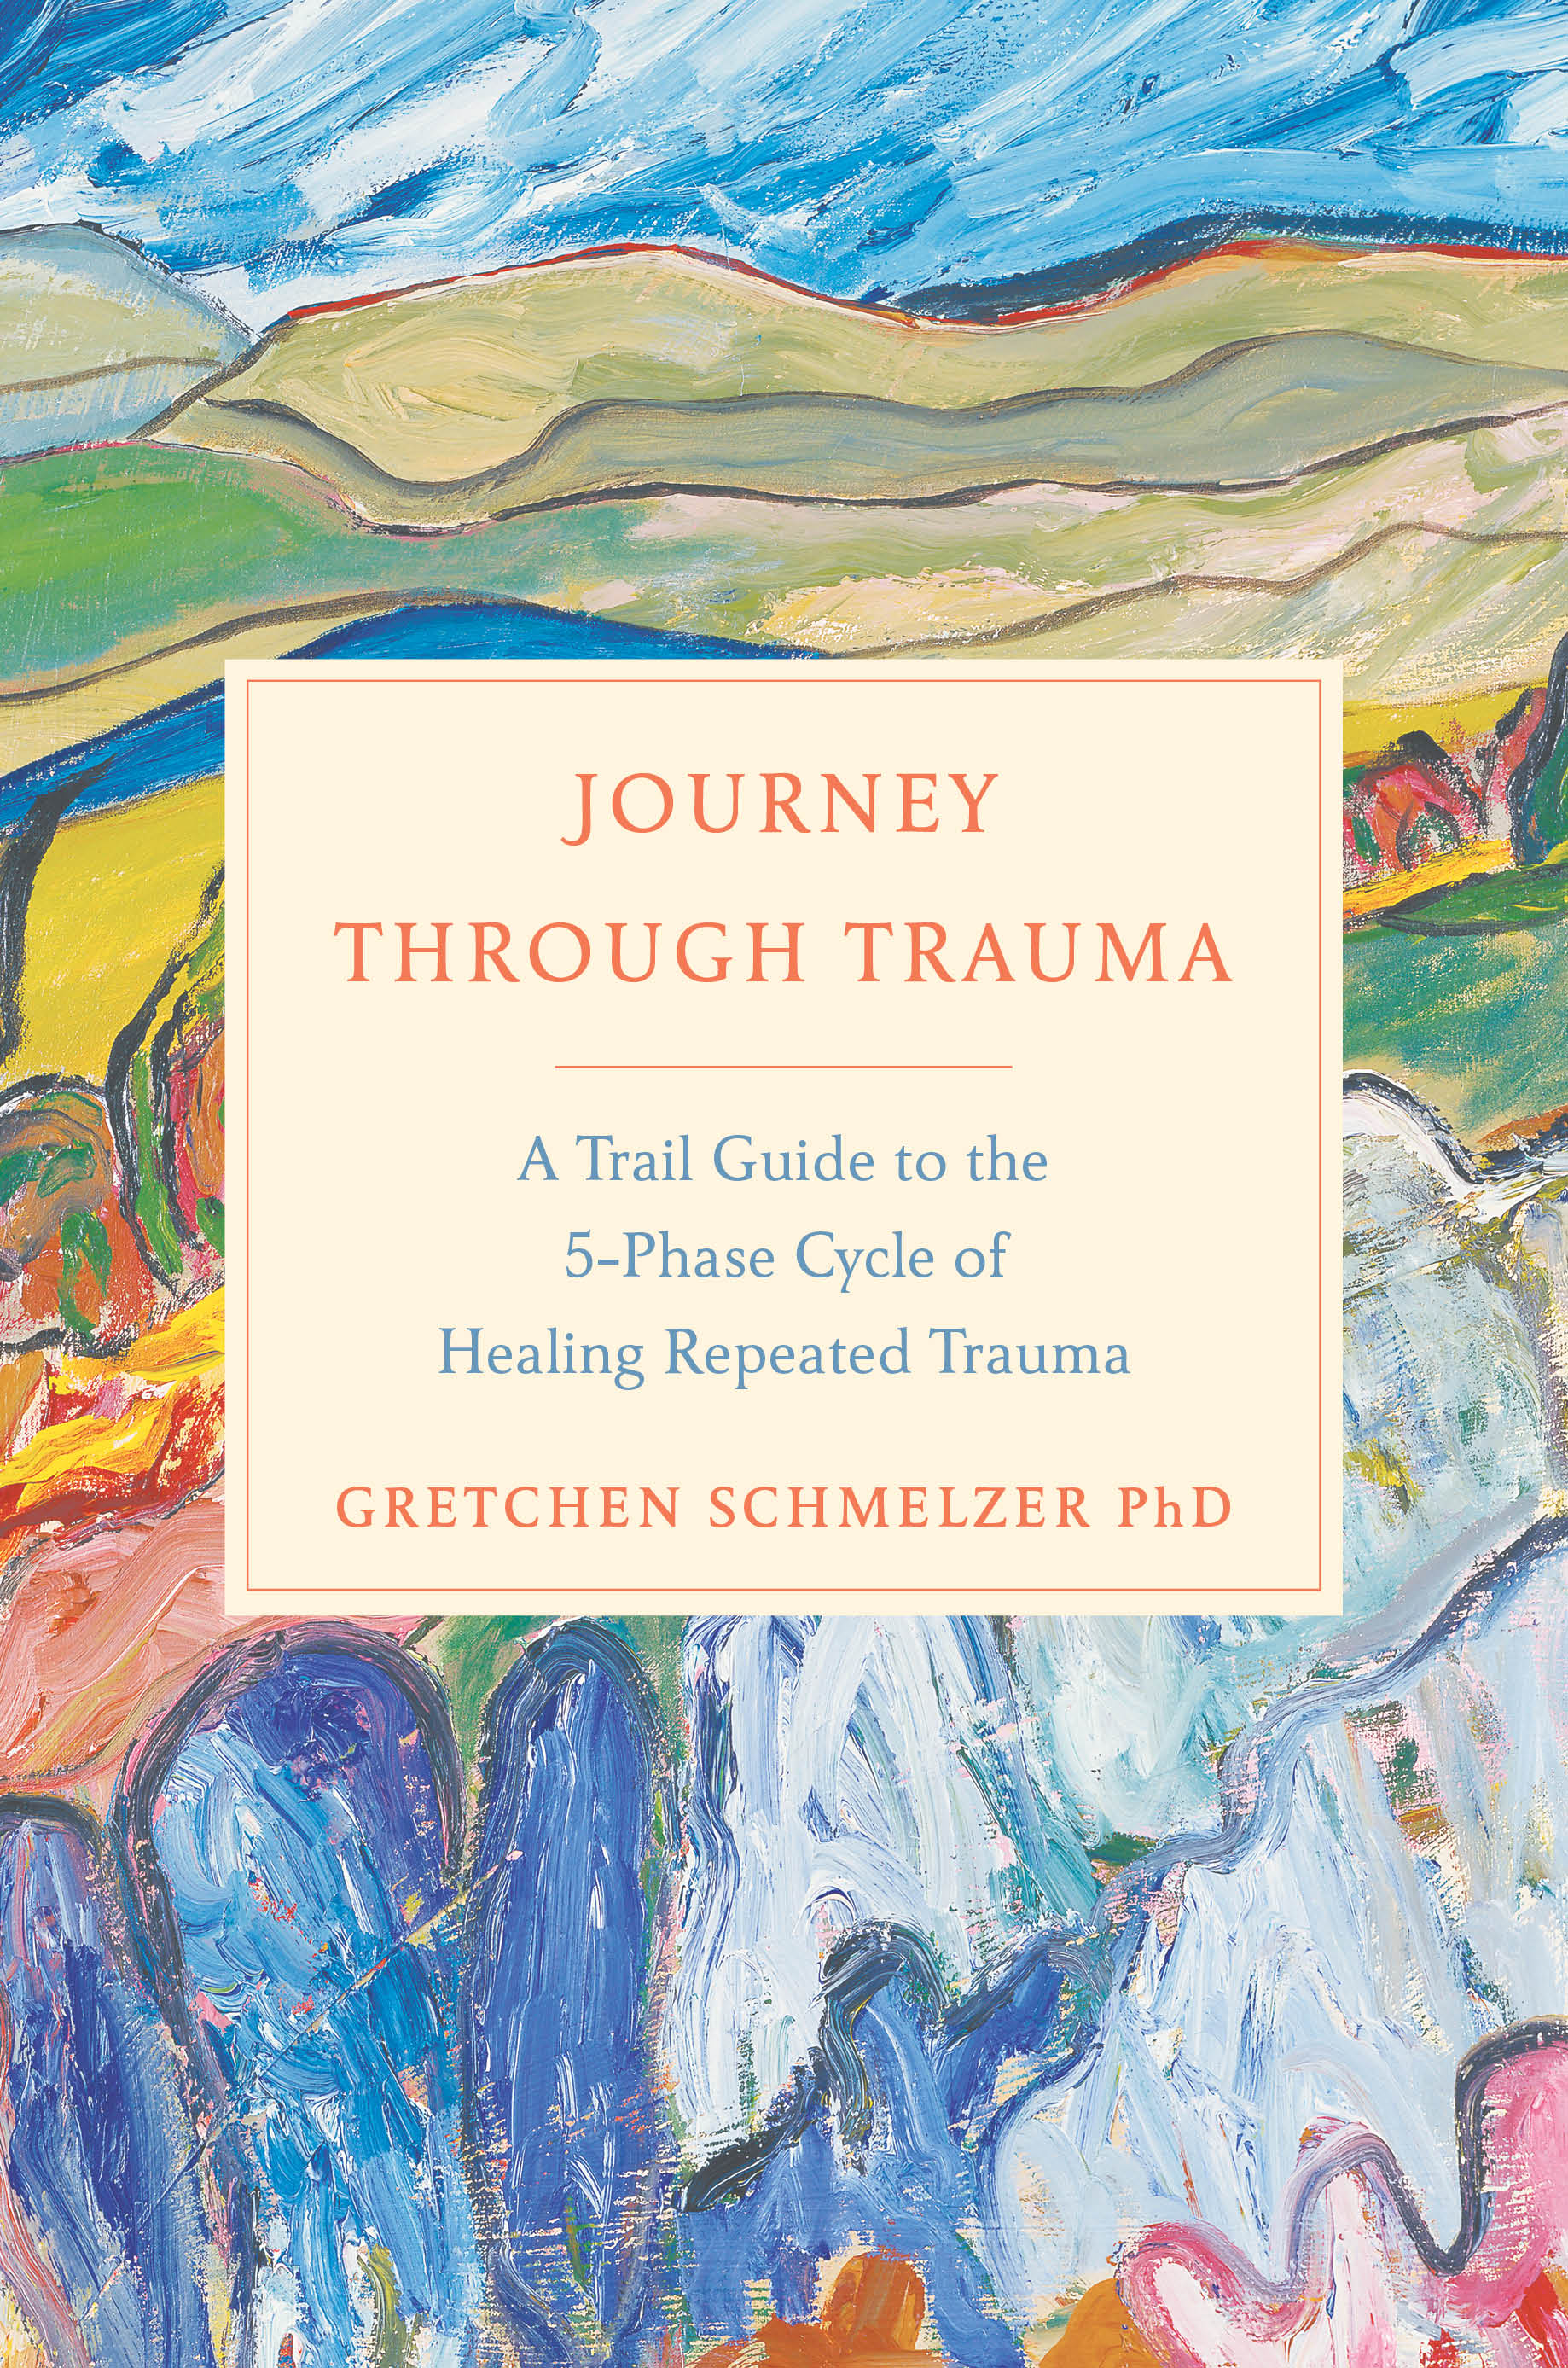 Journey Through Trauma  ON SALE NOW!